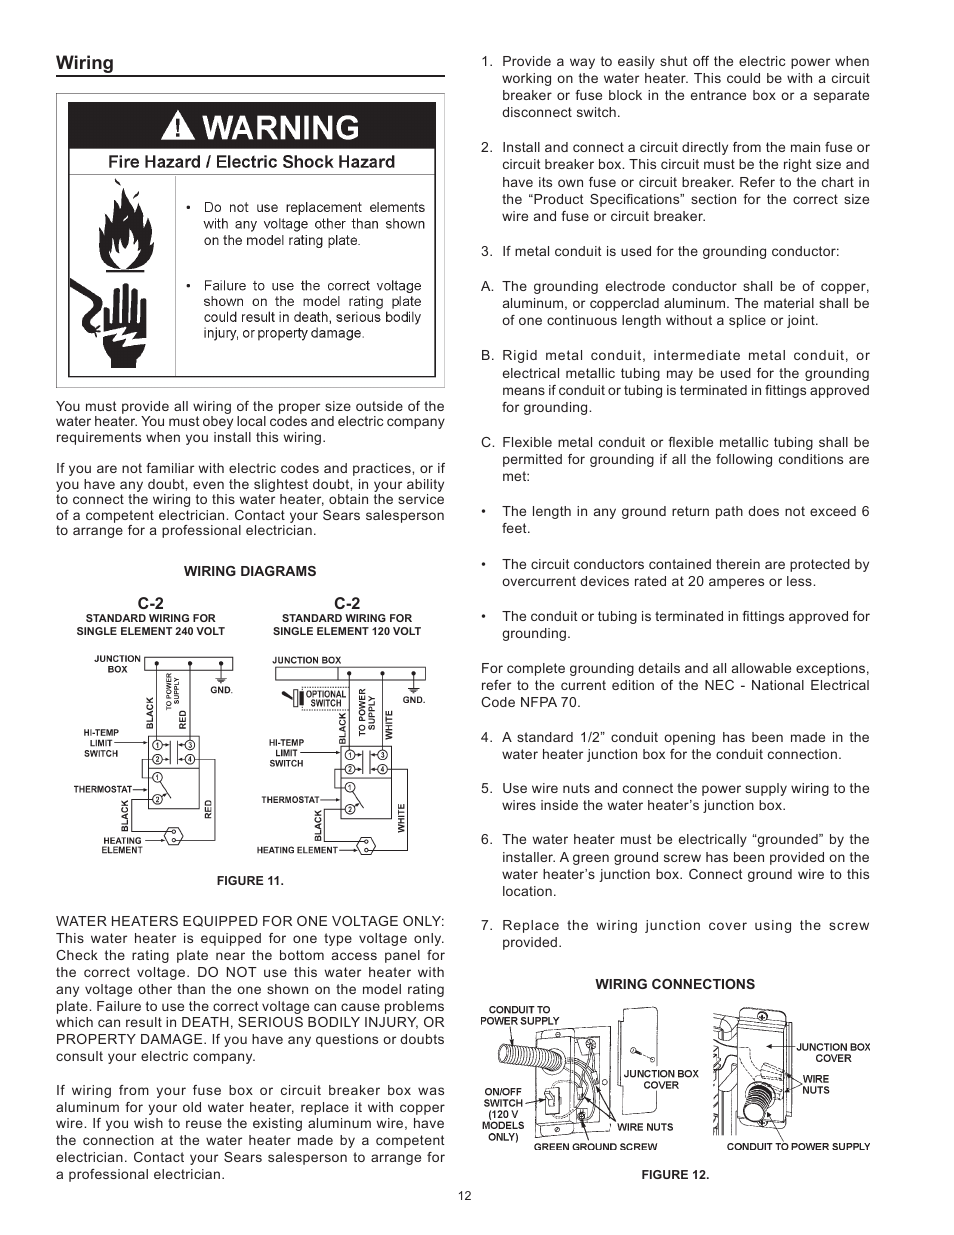 medium resolution of wiring kenmore the economizer tm 6 compact electric 153 31604 user manual page 12 24